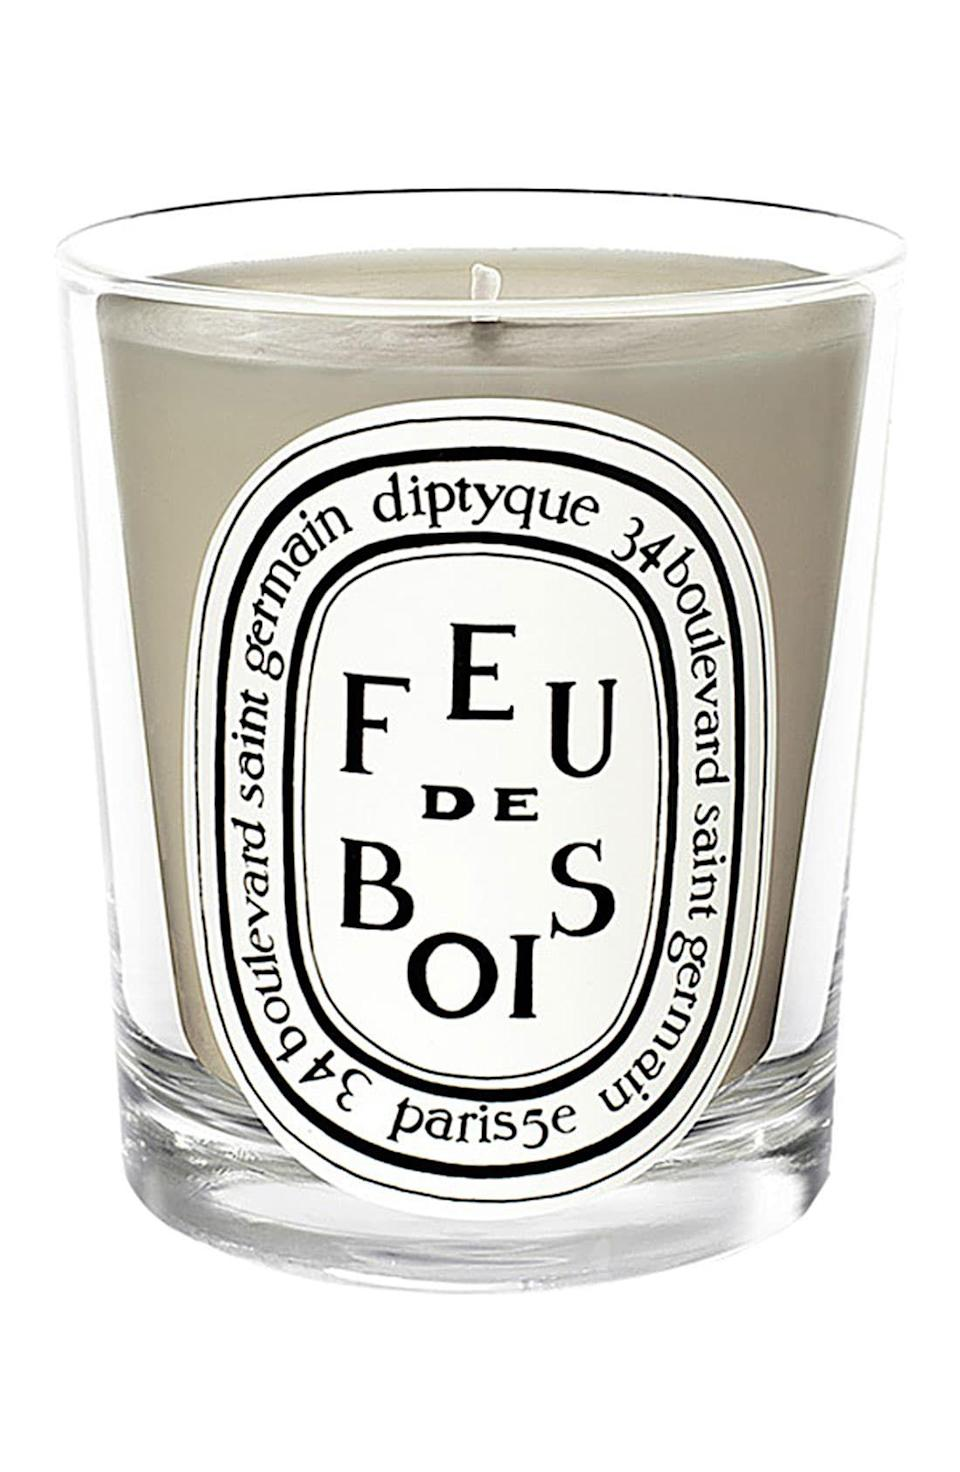 """<p><strong>DIPTYQUE</strong></p><p>nordstrom.com</p><p><strong>$36.00</strong></p><p><a href=""""https://go.redirectingat.com?id=74968X1596630&url=https%3A%2F%2Fwww.nordstrom.com%2Fs%2Fdiptyque-feu-de-bois-wood-fire-candle%2F3228001&sref=https%3A%2F%2Fwww.oprahmag.com%2Flife%2Fg27562264%2Fbest-fall-scented-candles%2F"""" rel=""""nofollow noopener"""" target=""""_blank"""" data-ylk=""""slk:SHOP NOW"""" class=""""link rapid-noclick-resp"""">SHOP NOW</a></p><p>A fragrance staple: the sophisticated accord of rare woods will flow throughout your home all season long.</p>"""